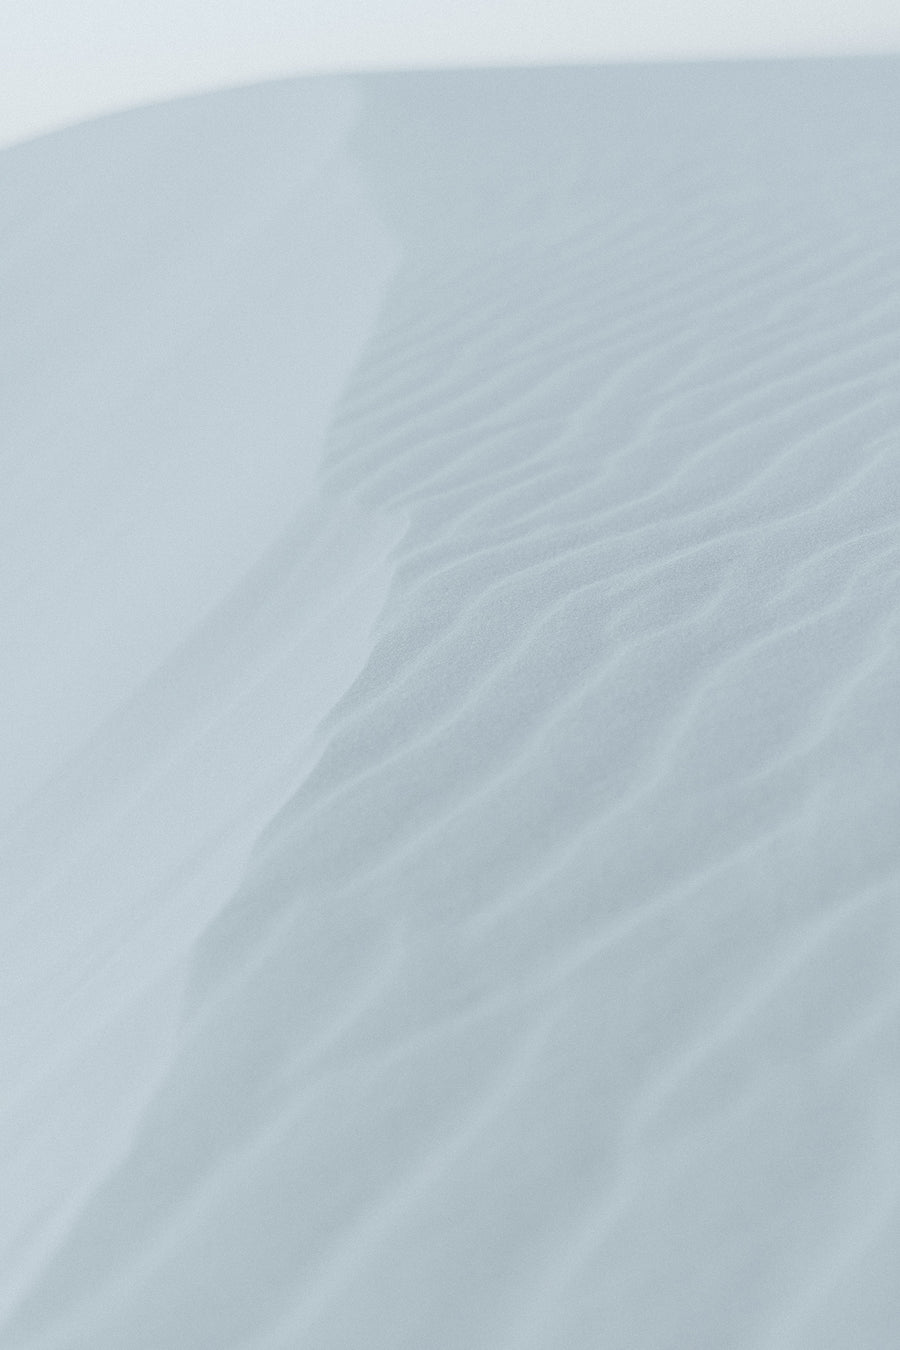 Photography: White Sands Crest - Organ Mountain Outfitters